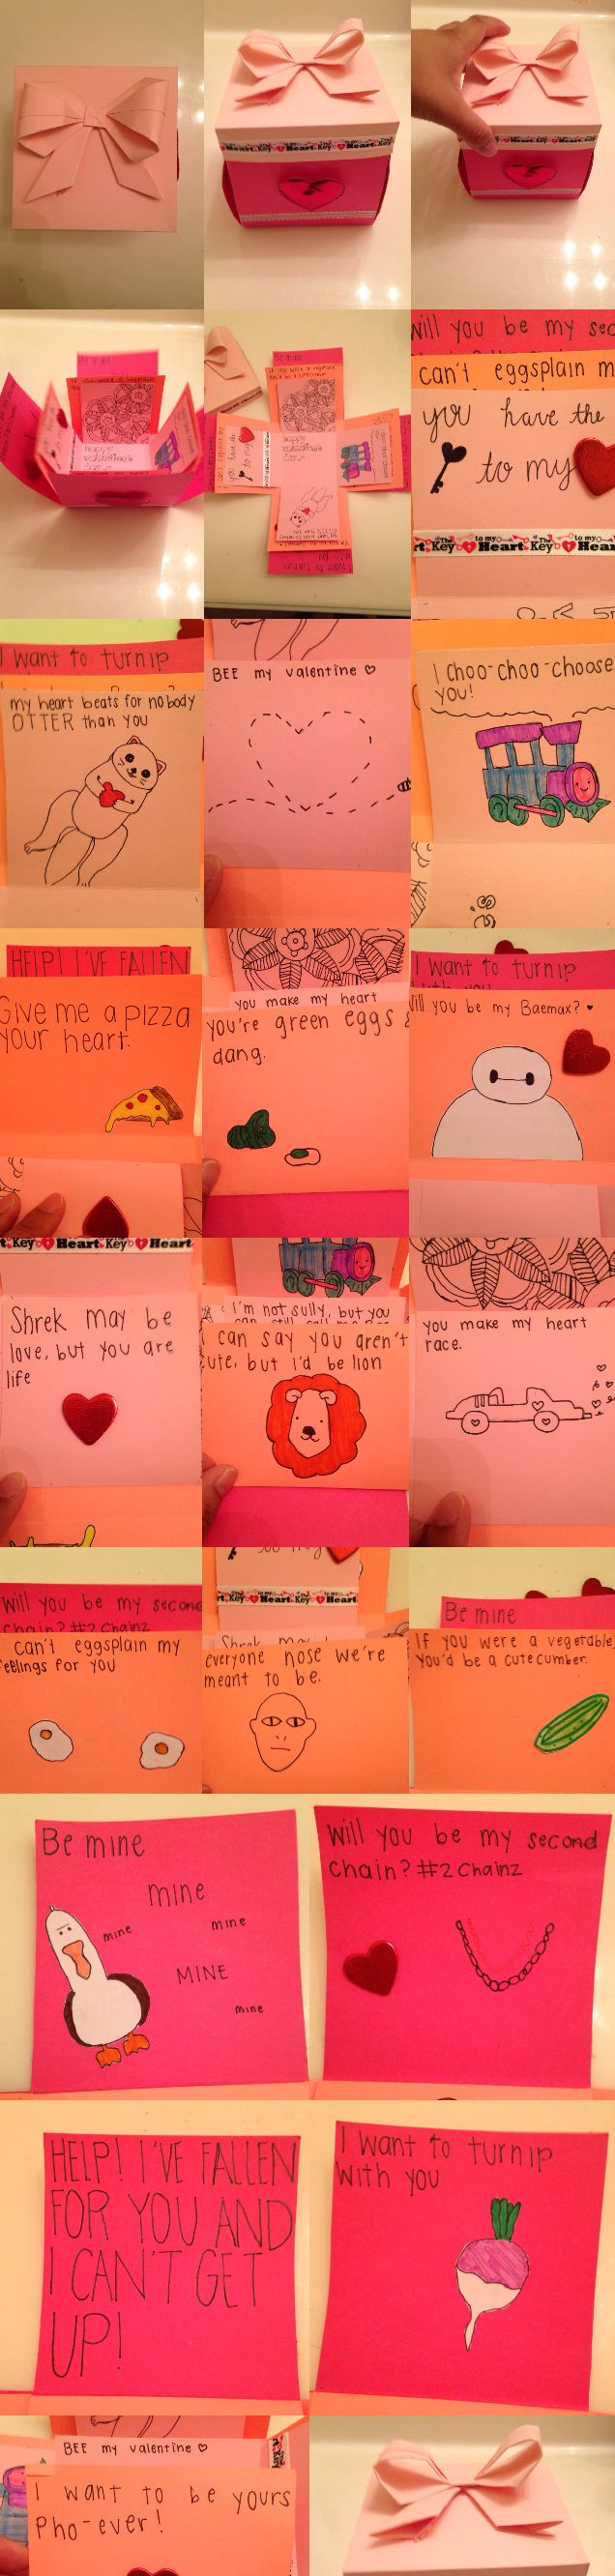 I made a valentine's day exploding box for my boyfriend with corny pick up lines in them. I messed up a lot, but it's still cute though. ♥